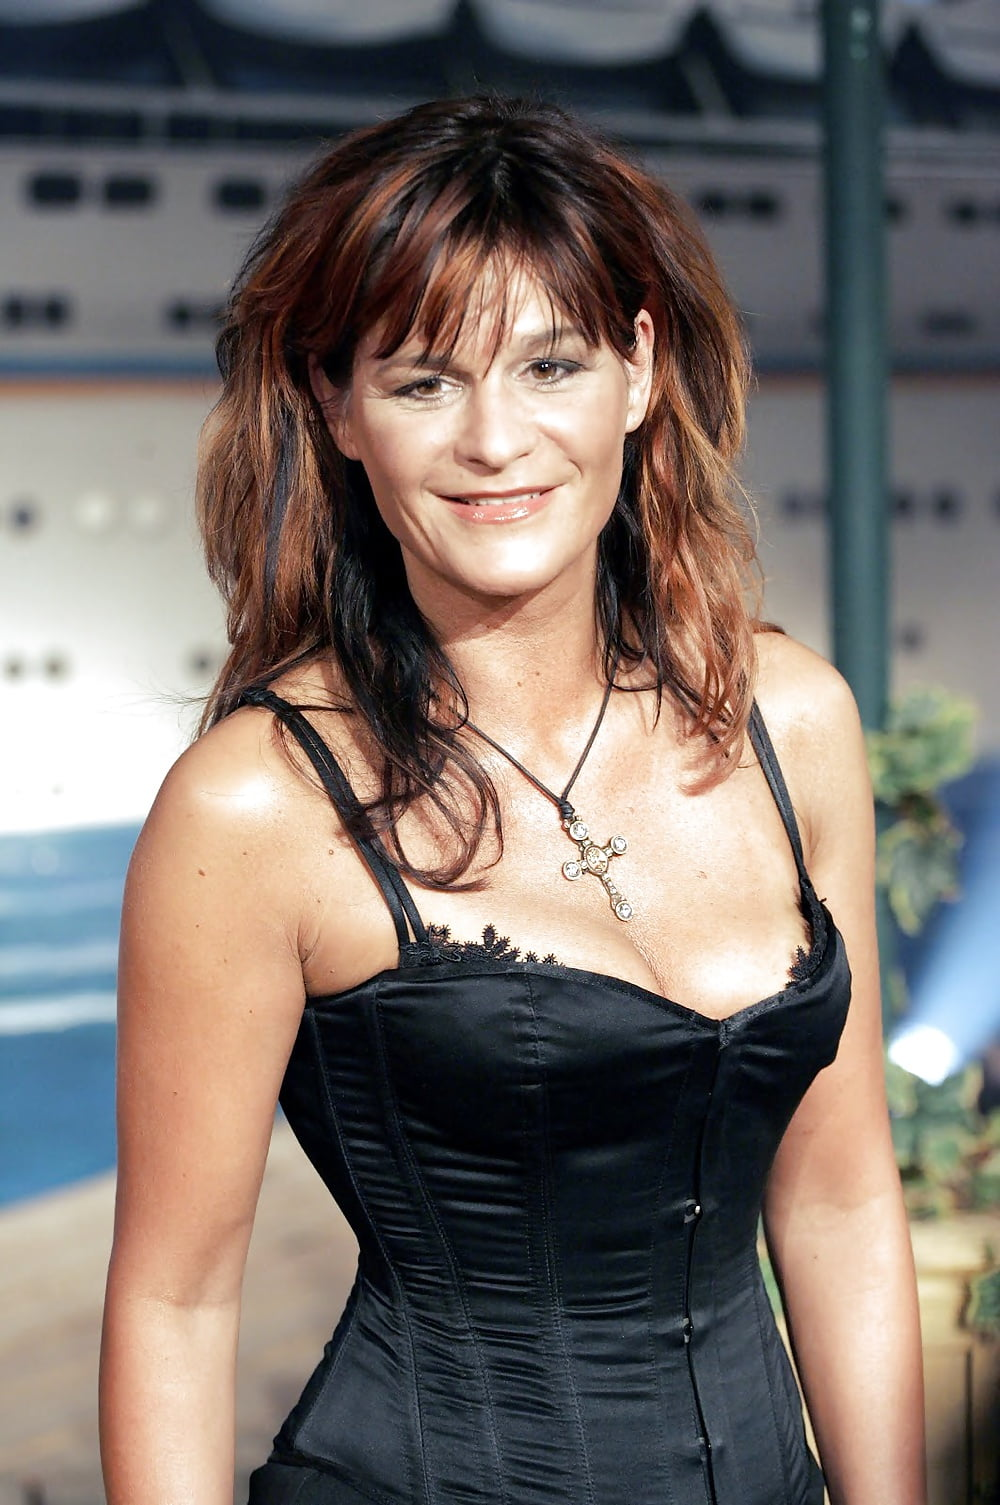 See and Save As helene fischer oder andrea berg porn pict